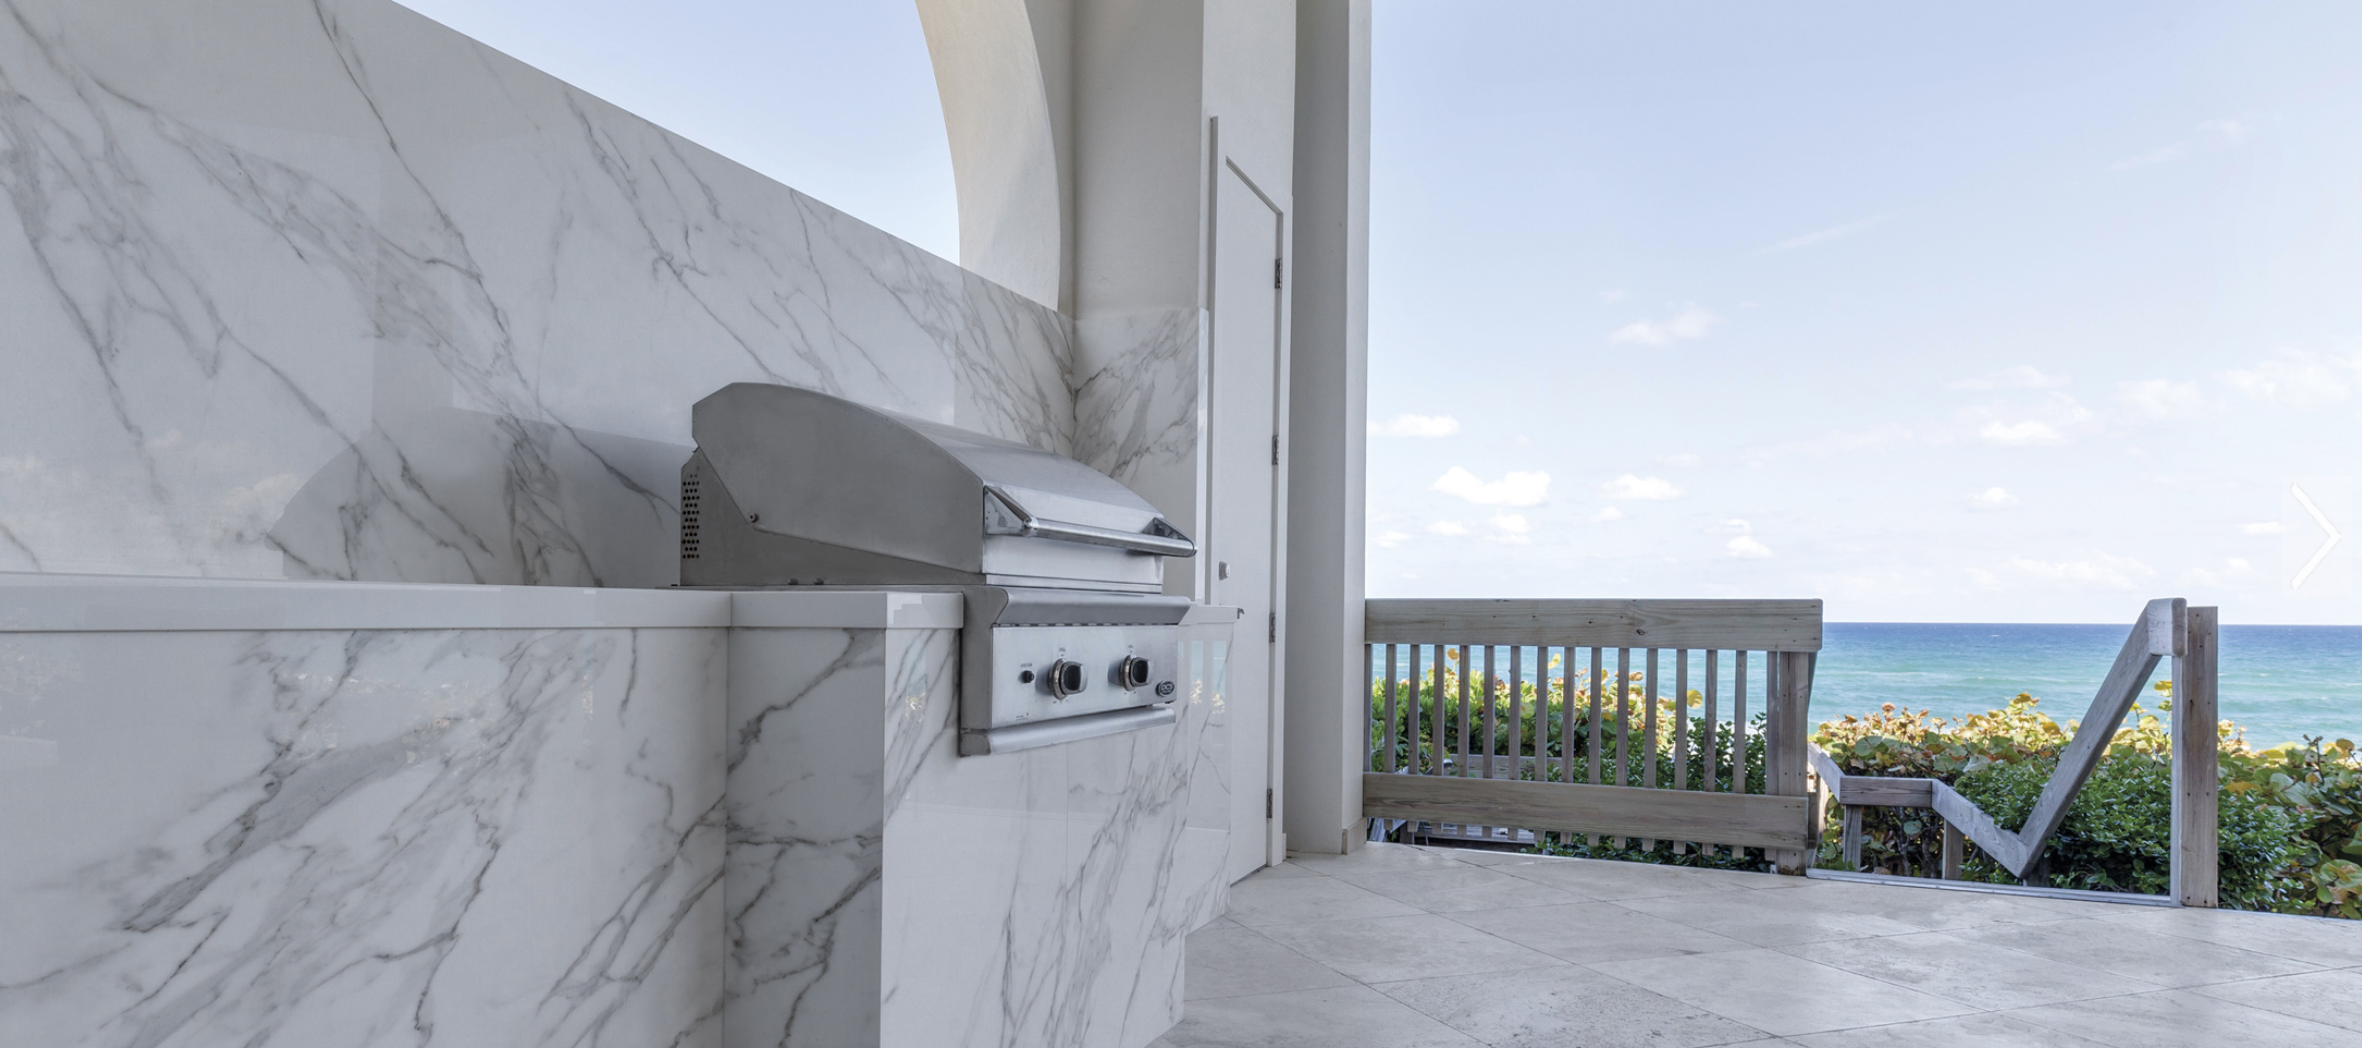 Neolith porcelain for outdoor use in Ottawa